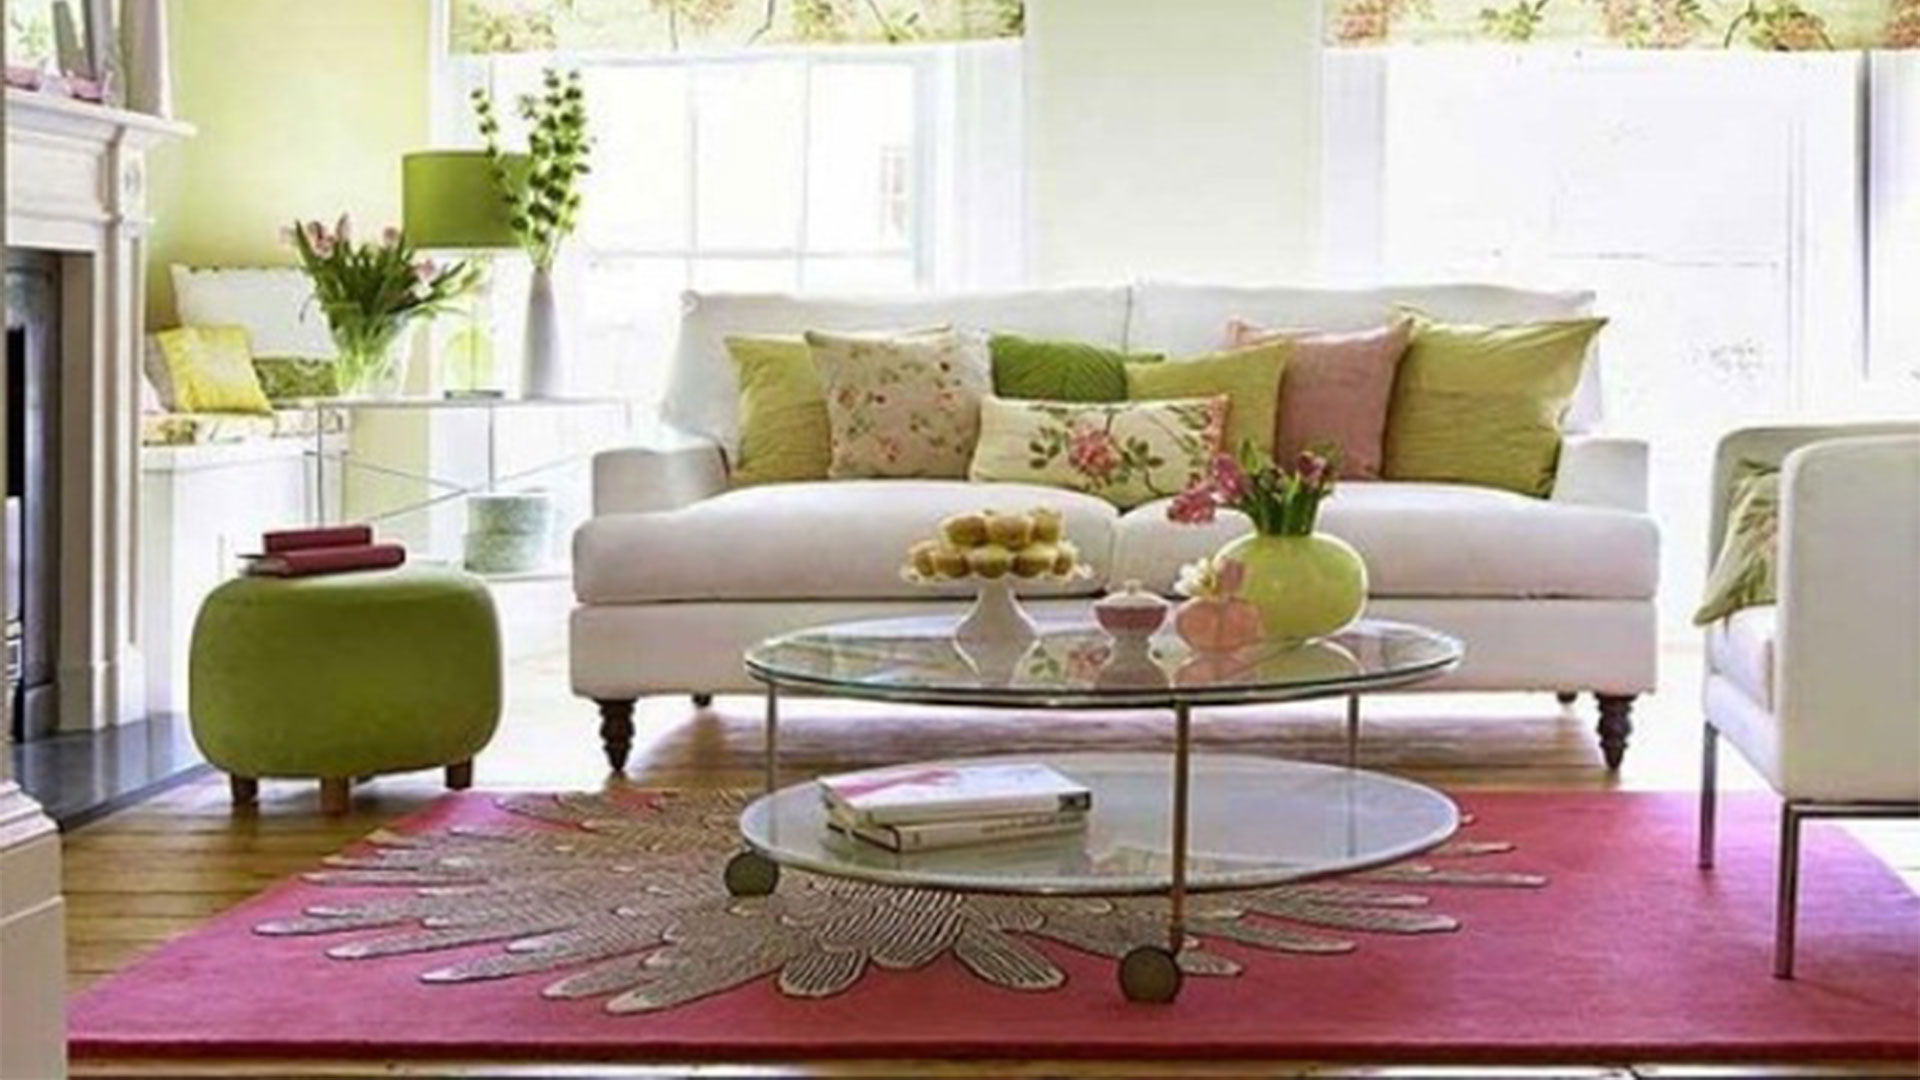 Living Room clipart home design Living 44 Ideas Dining Room